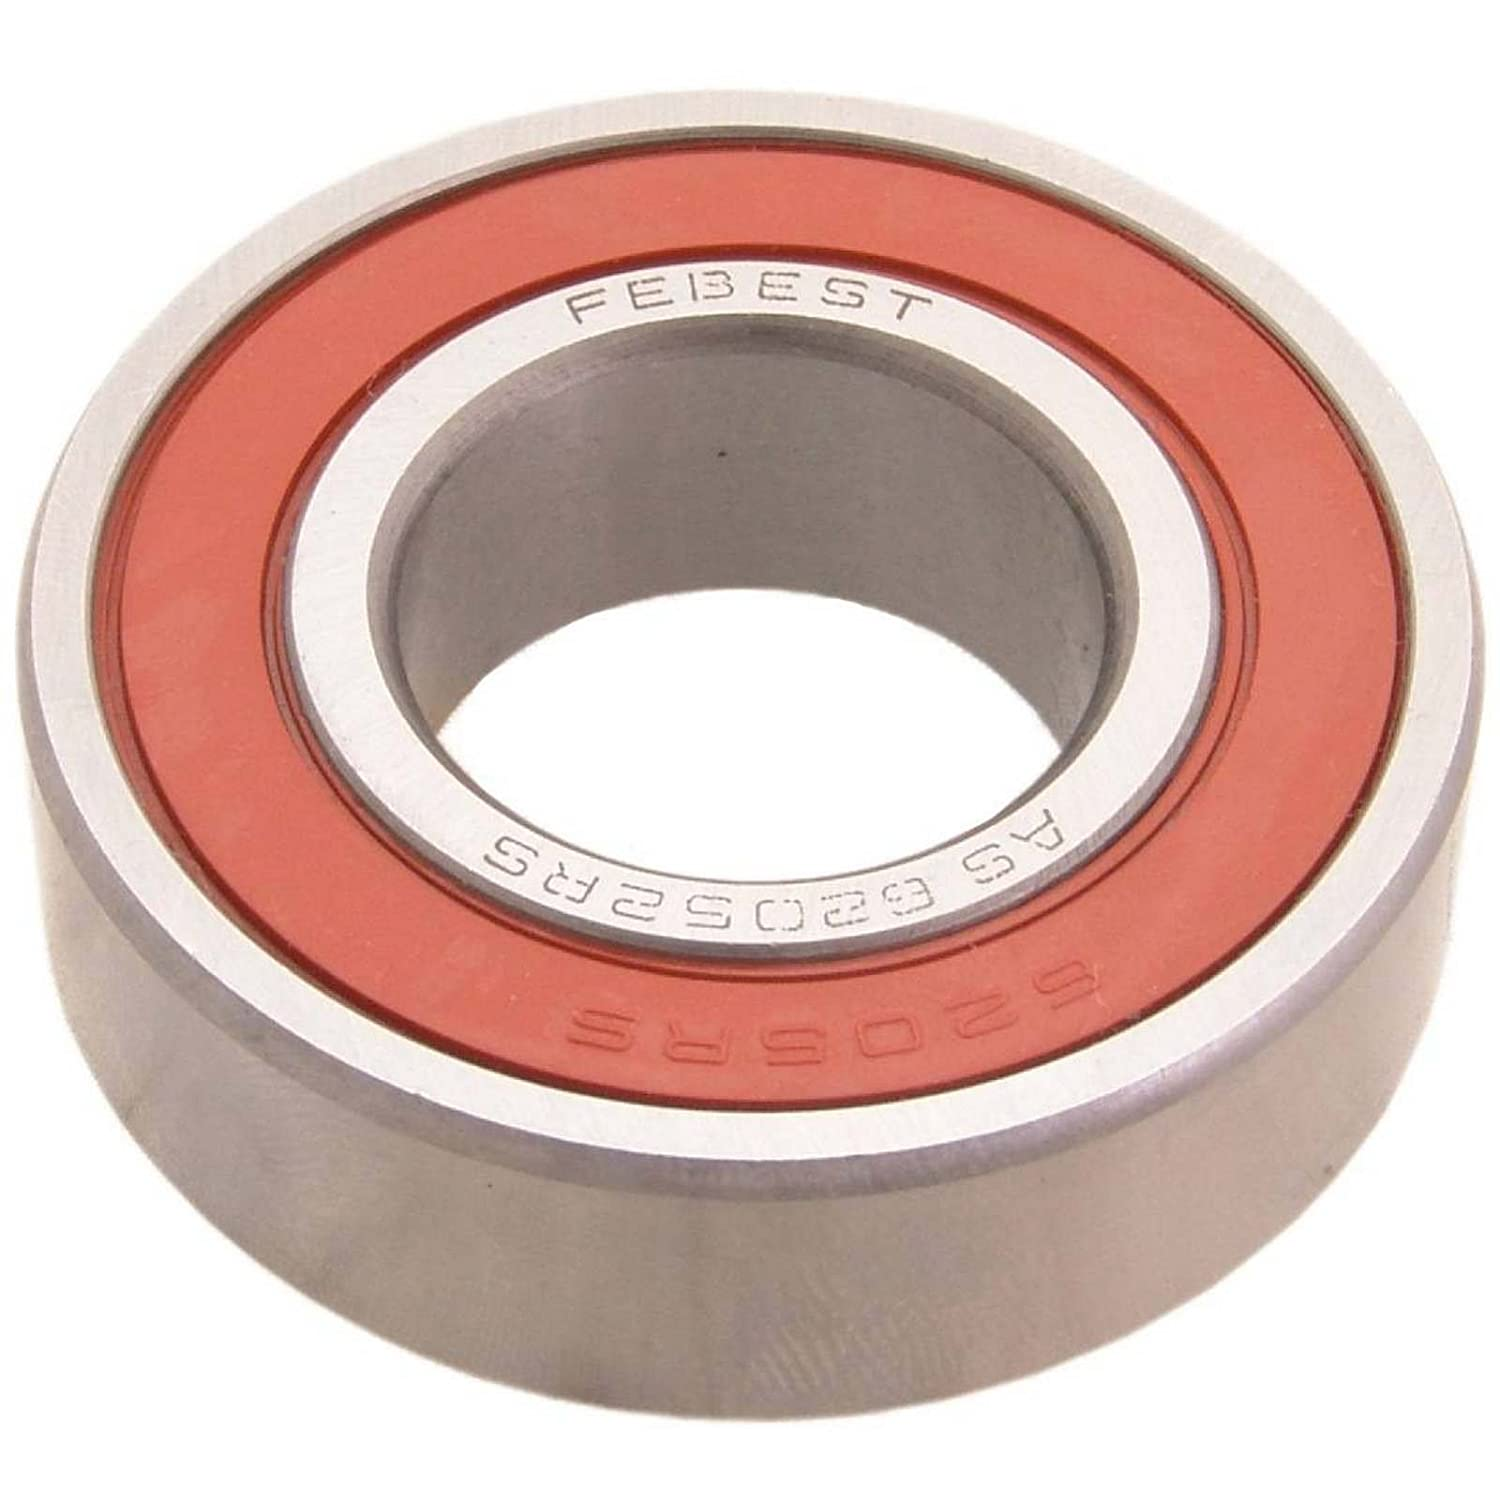 BALL BEARING 25X52X15. Febest: AS-6205-2RS